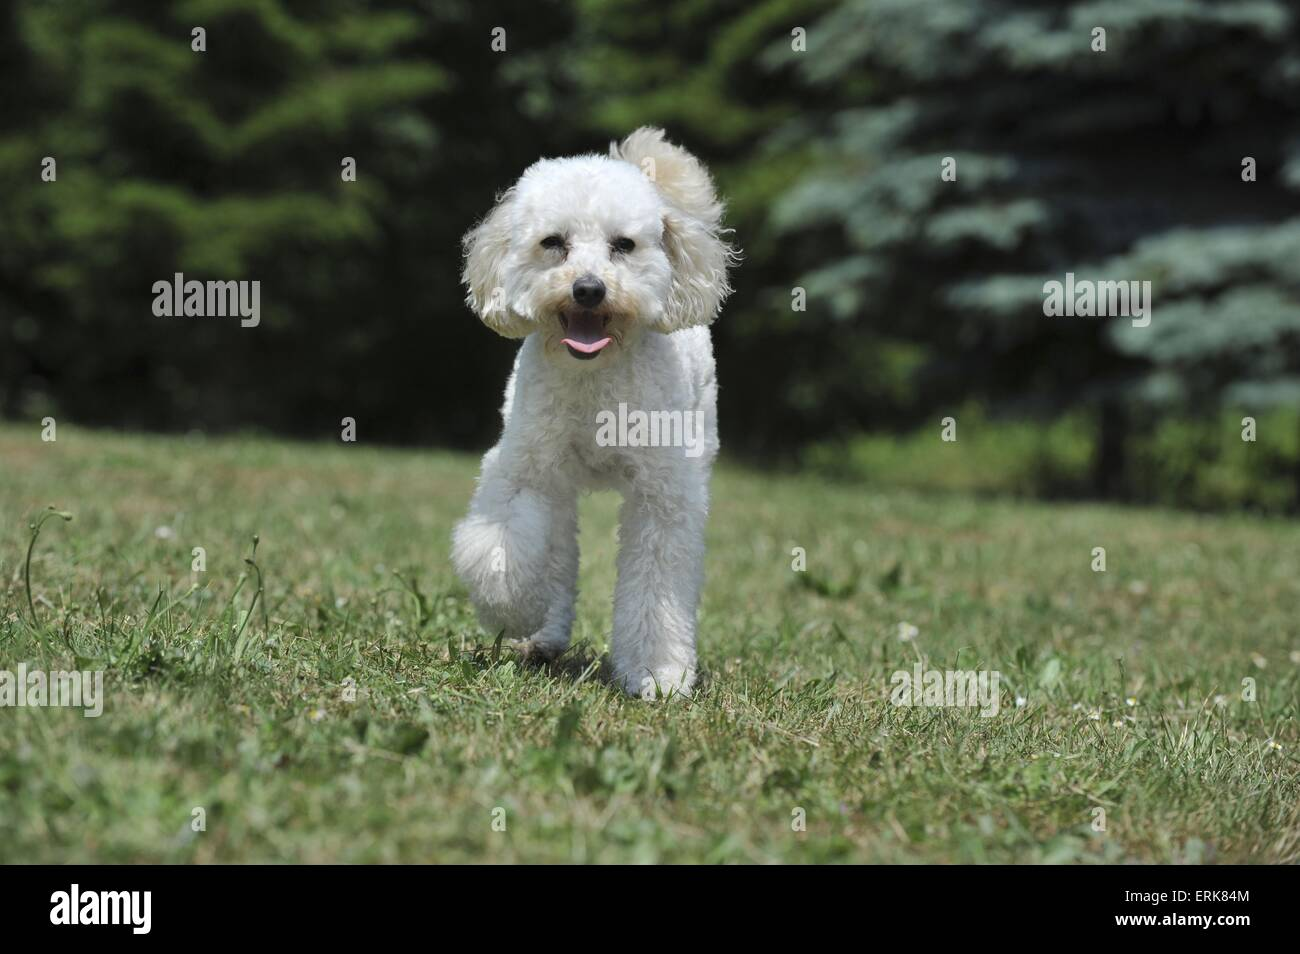 walking Poodle - Stock Image